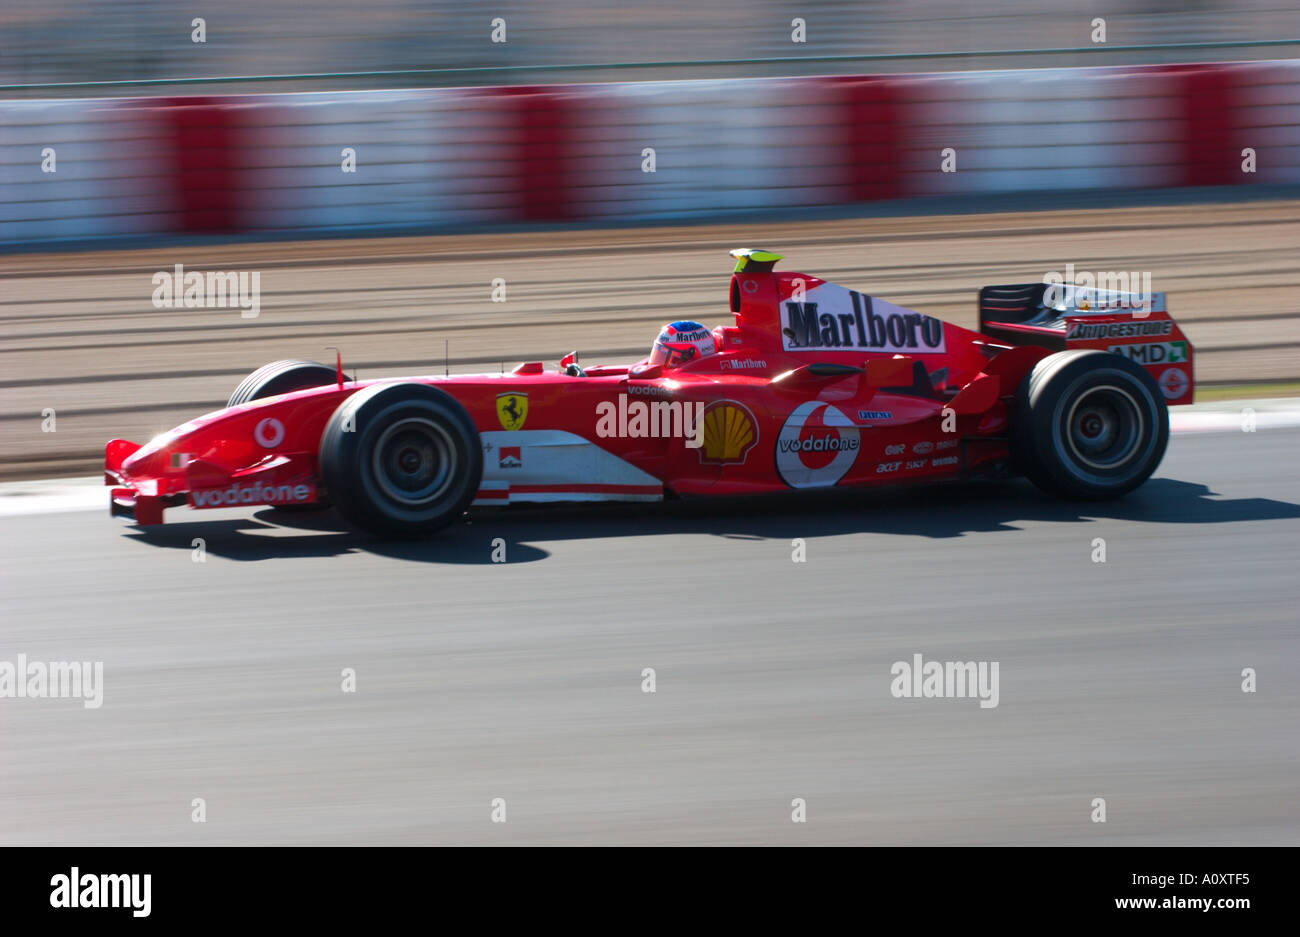 Rubens Barrichello In The Ferrari F2004 Formula 1 Racecar In 2005